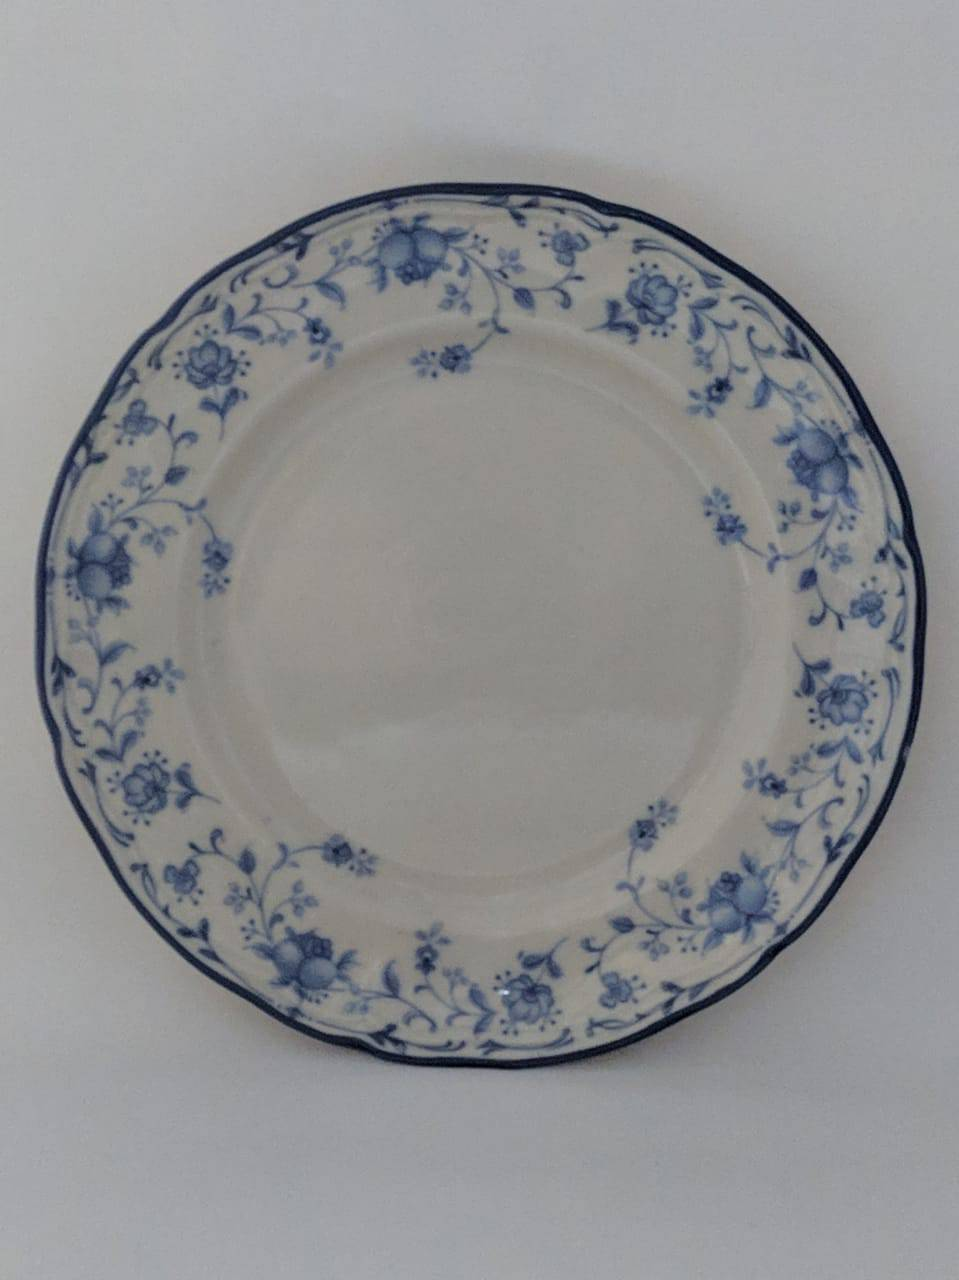 Piring Ceper China Blue